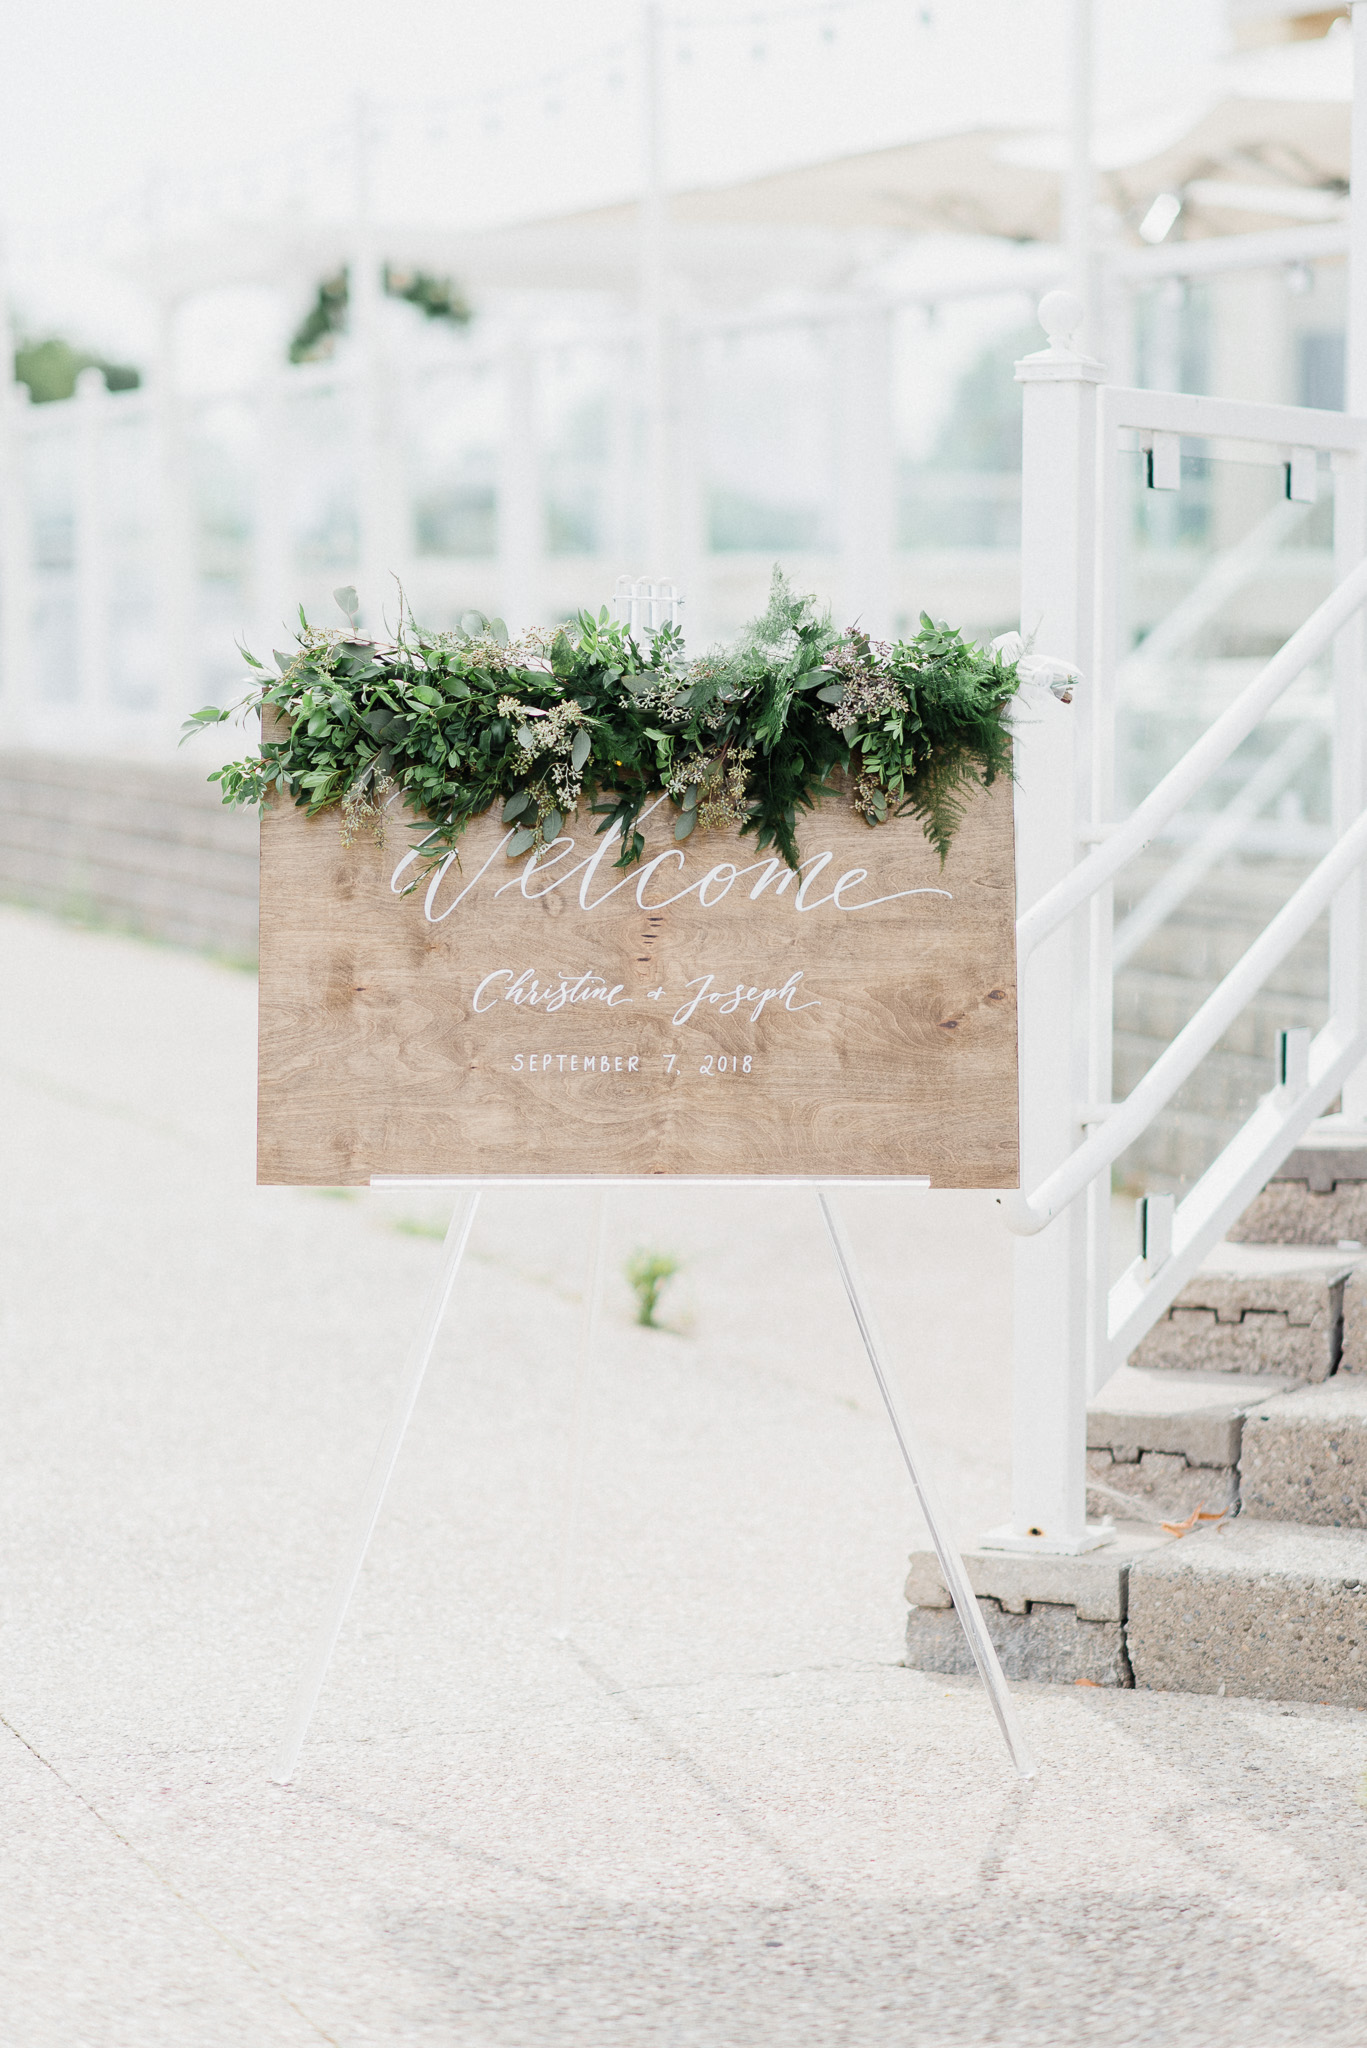 Wooden wedding welcome sign | Jenn Kavanagh Photography